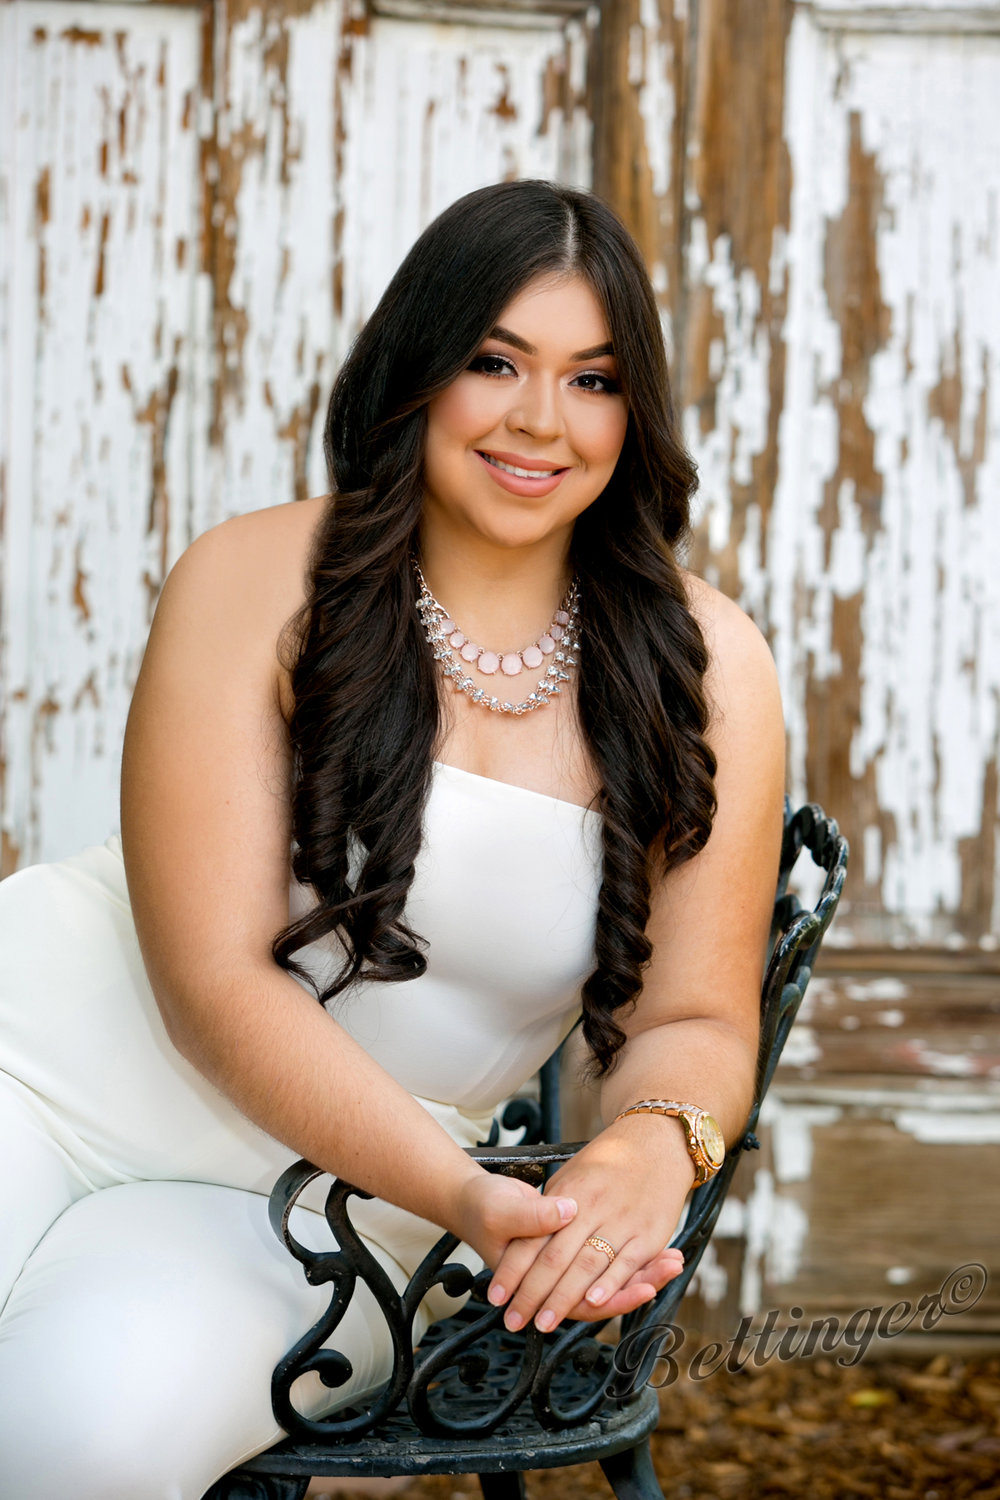 - Estefania is a very outgoing person.  She loves to laugh and is proud of her heritage.  She has made Silver Honor Roll and Volunteers for Wash Park Spring Clean.  Her future plans involve becoming a nurse.